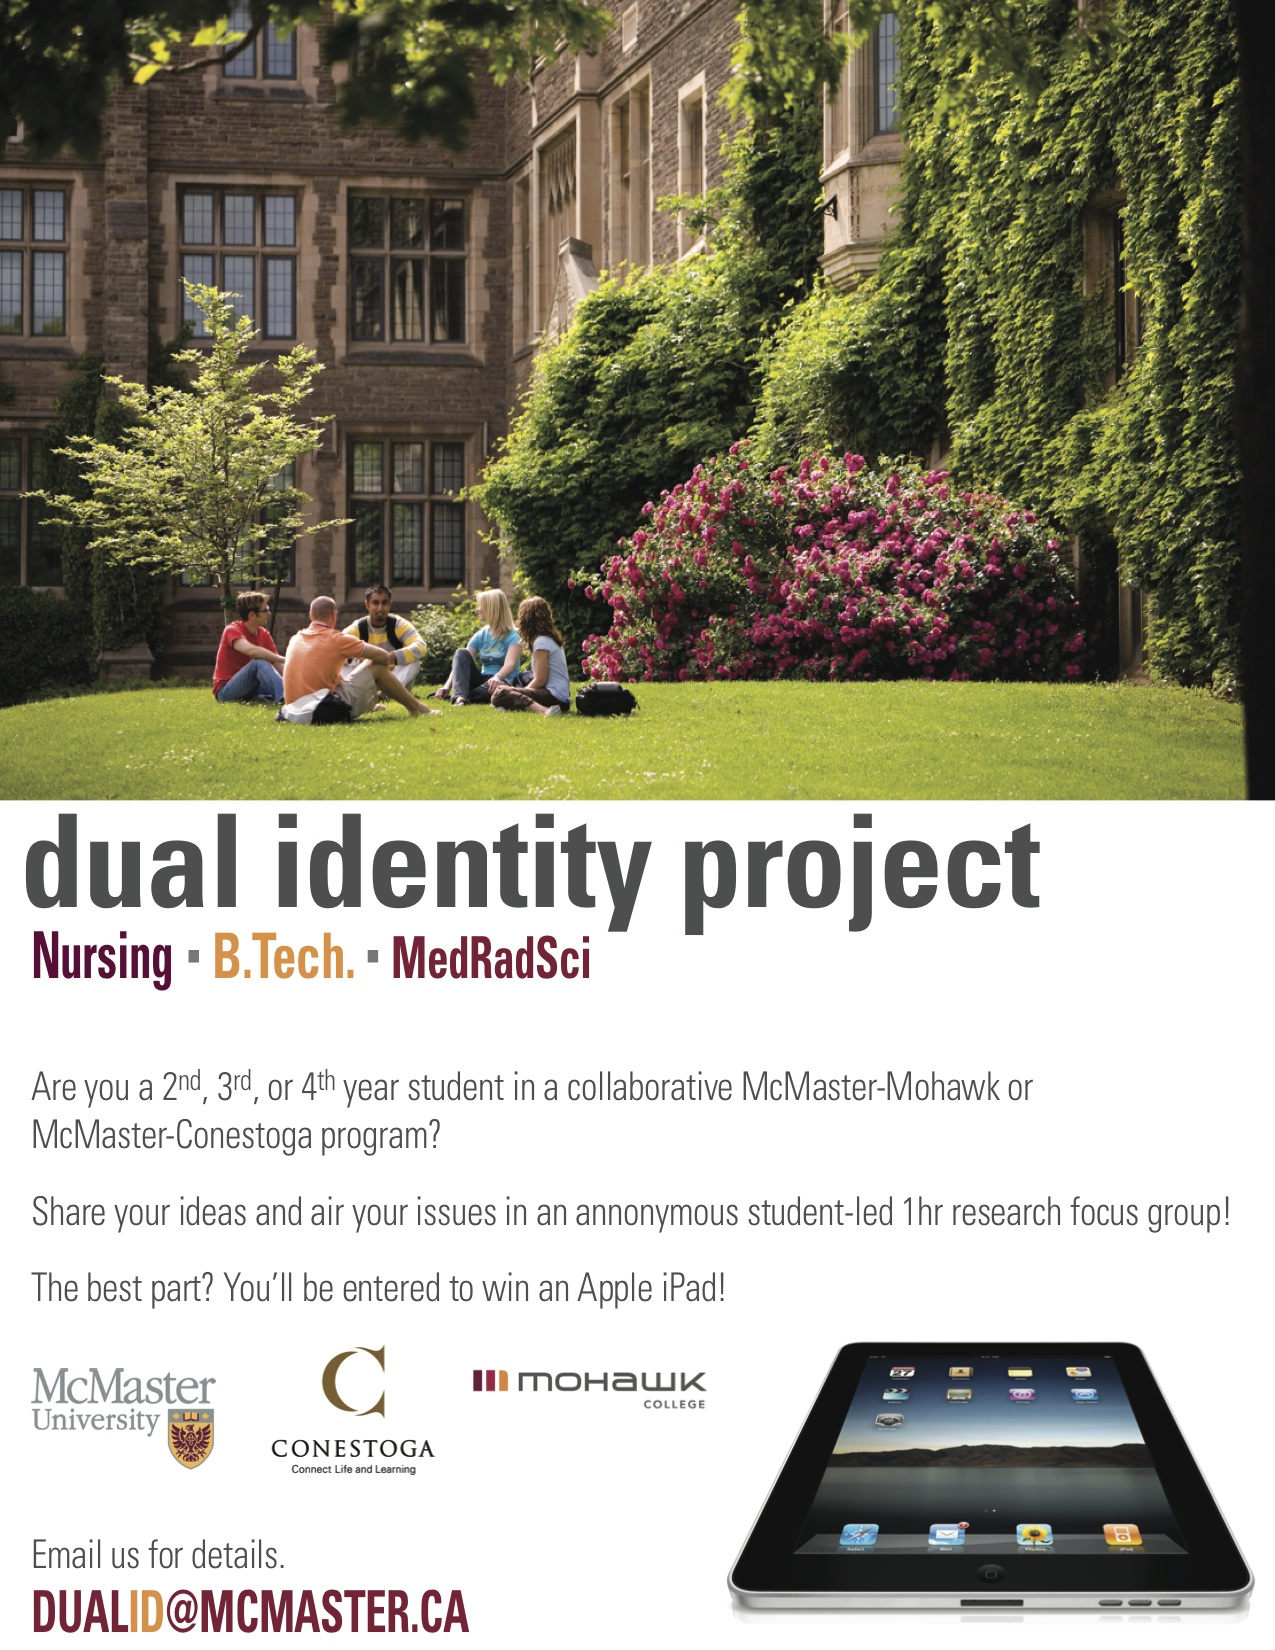 Dual Identity Project Poster October 3, 2013